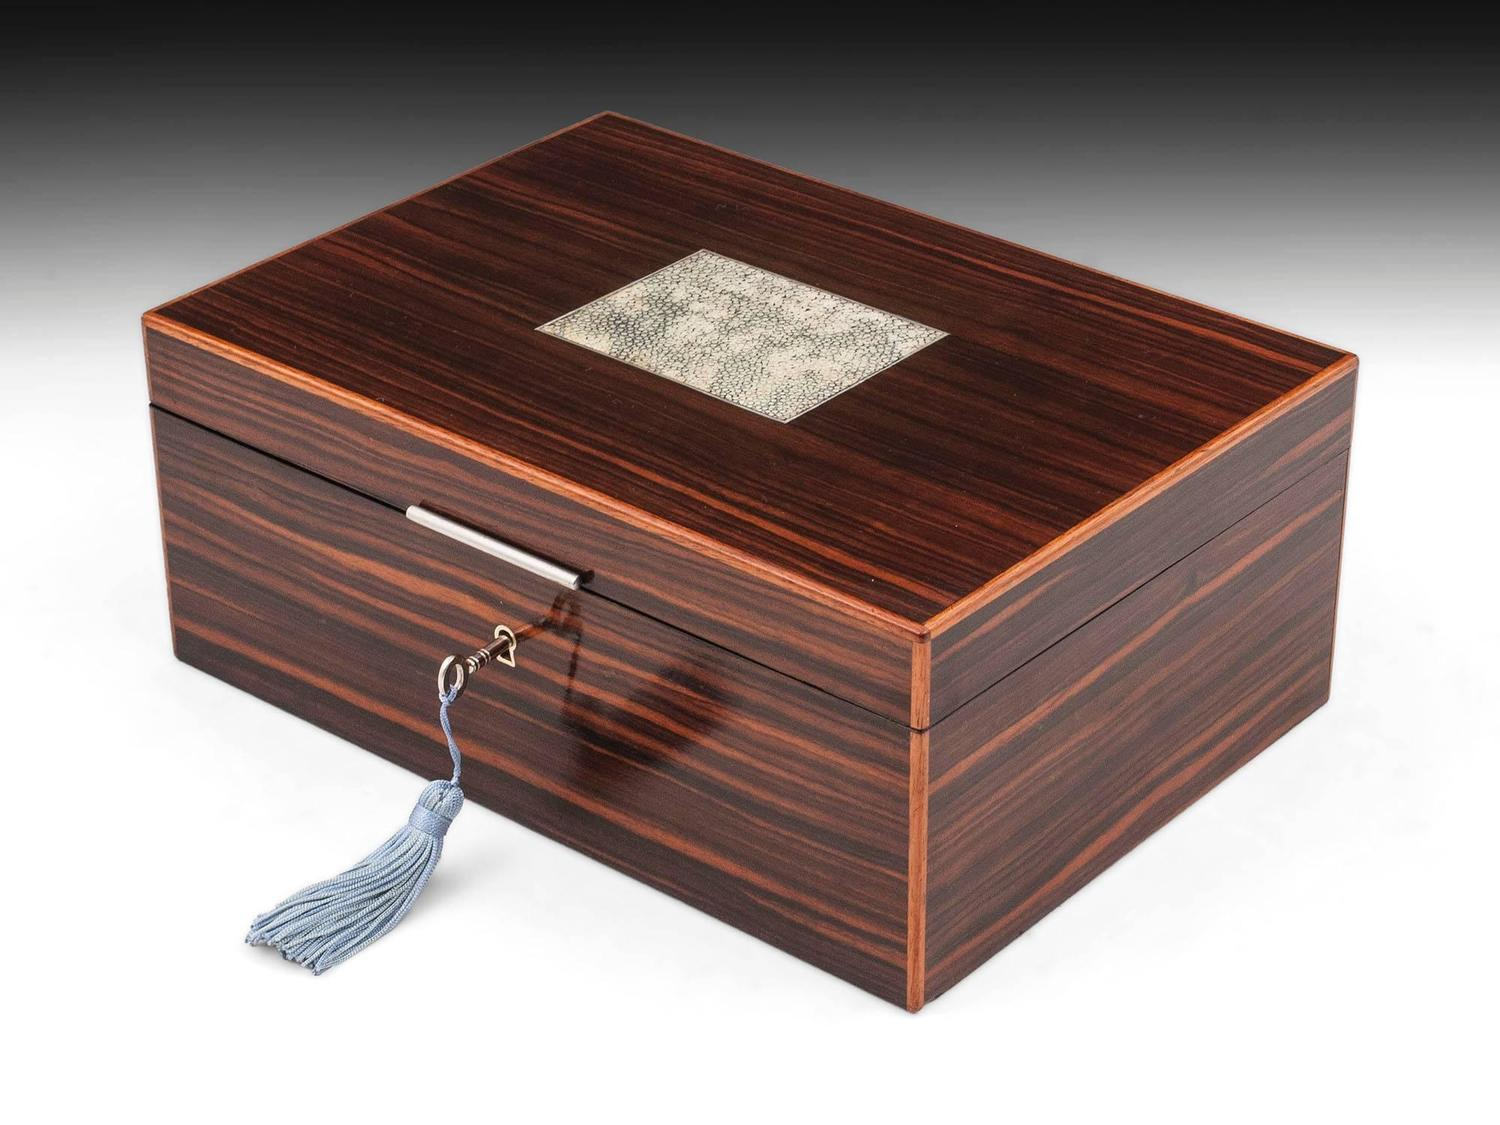 Dunhill Cigar Humidor For Sale at 1stdibs